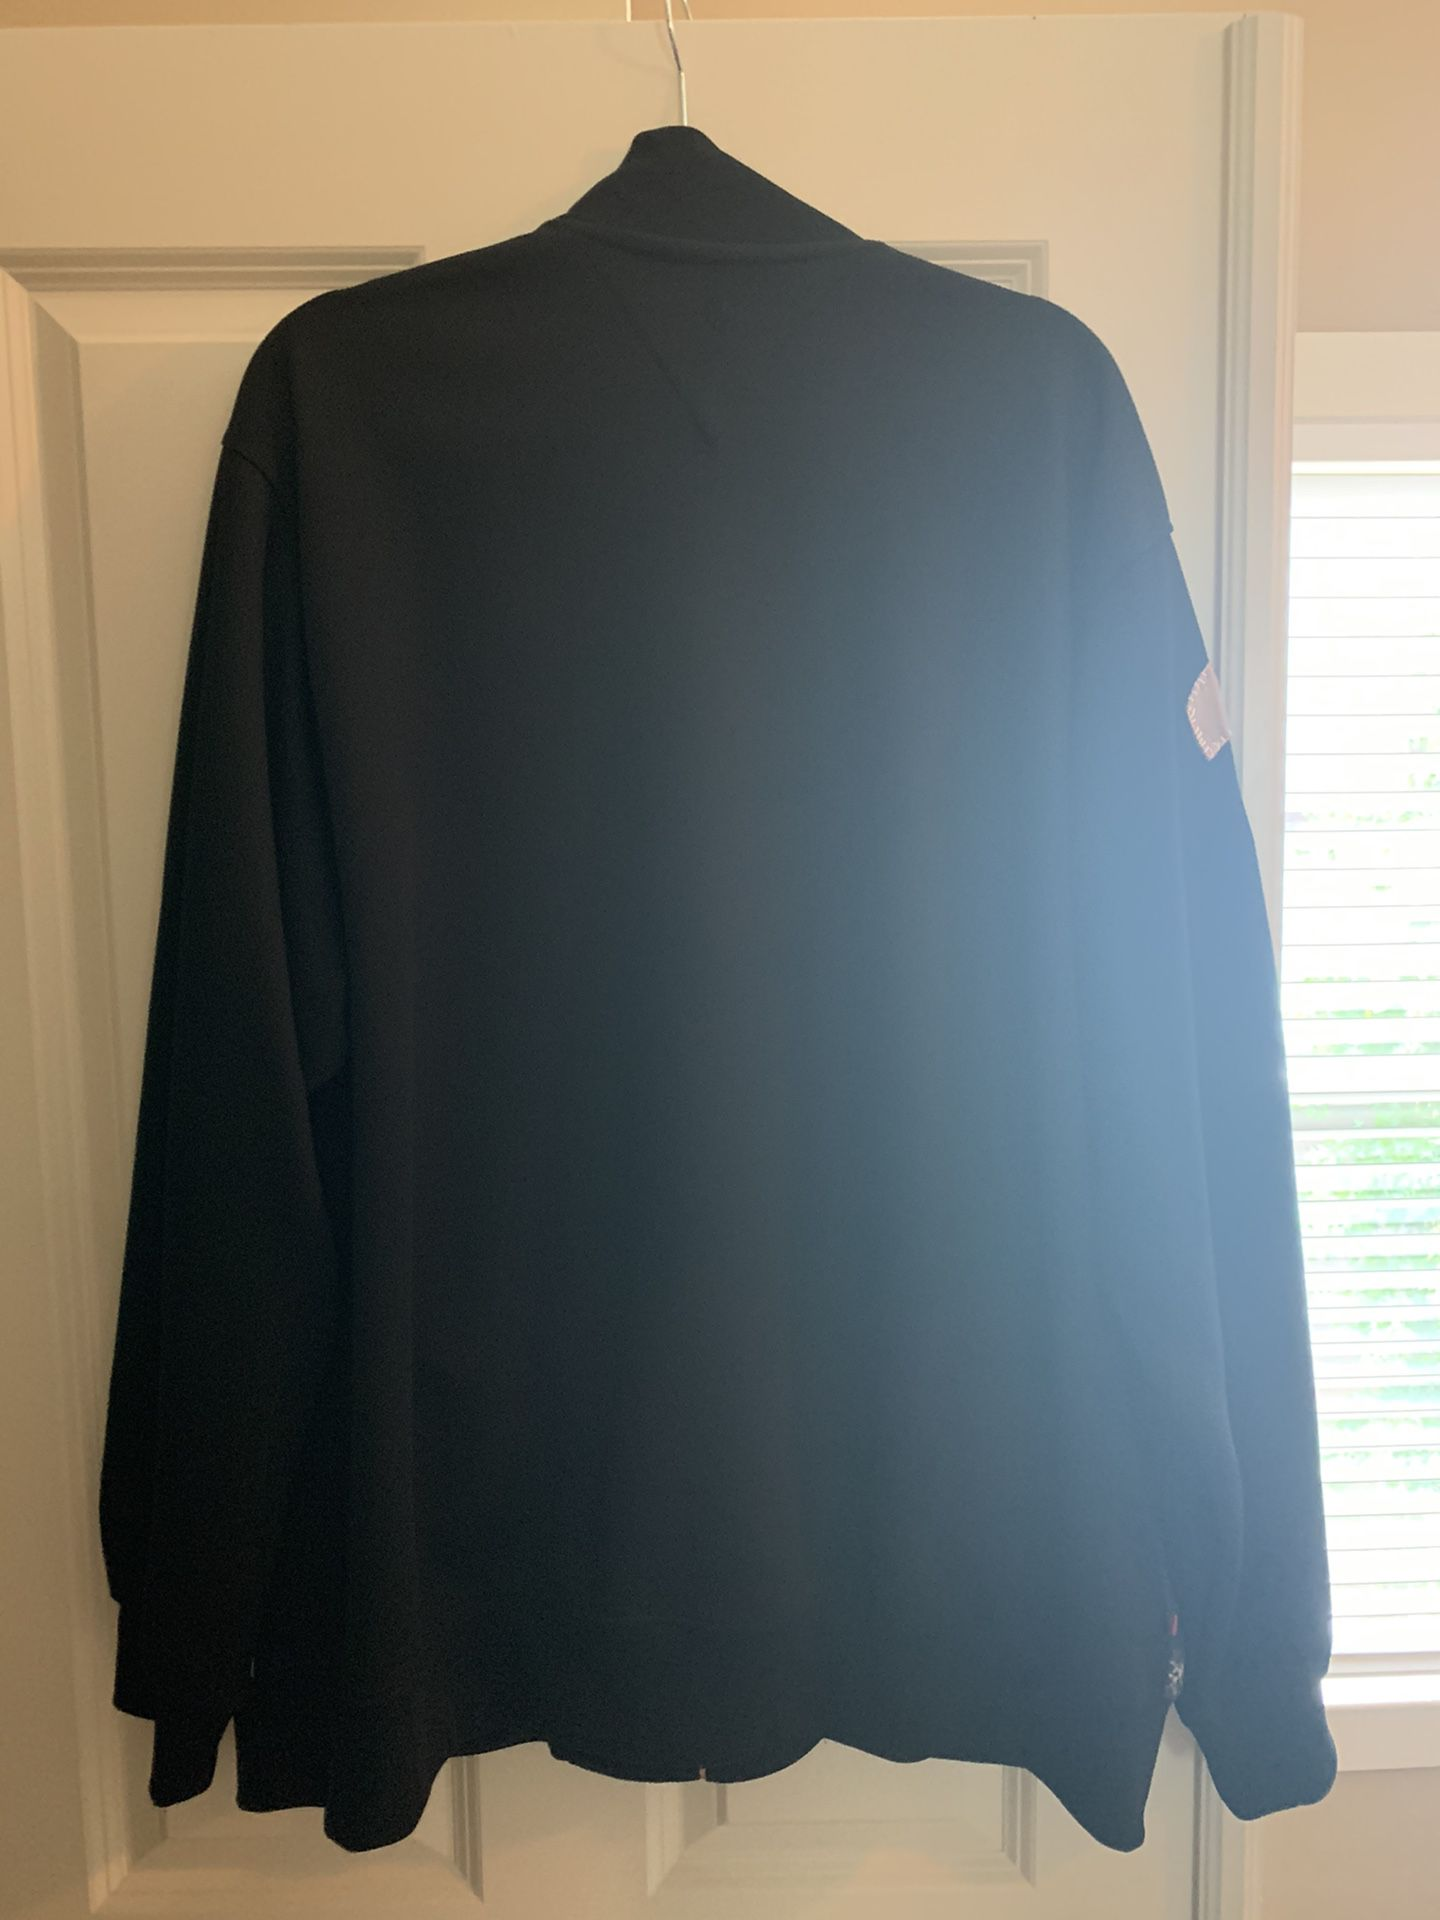 Men's 3X RocaWear Zip Up Jacket...10/10 Condition Only Has Ever Been Dry Cleaned Professionally Done